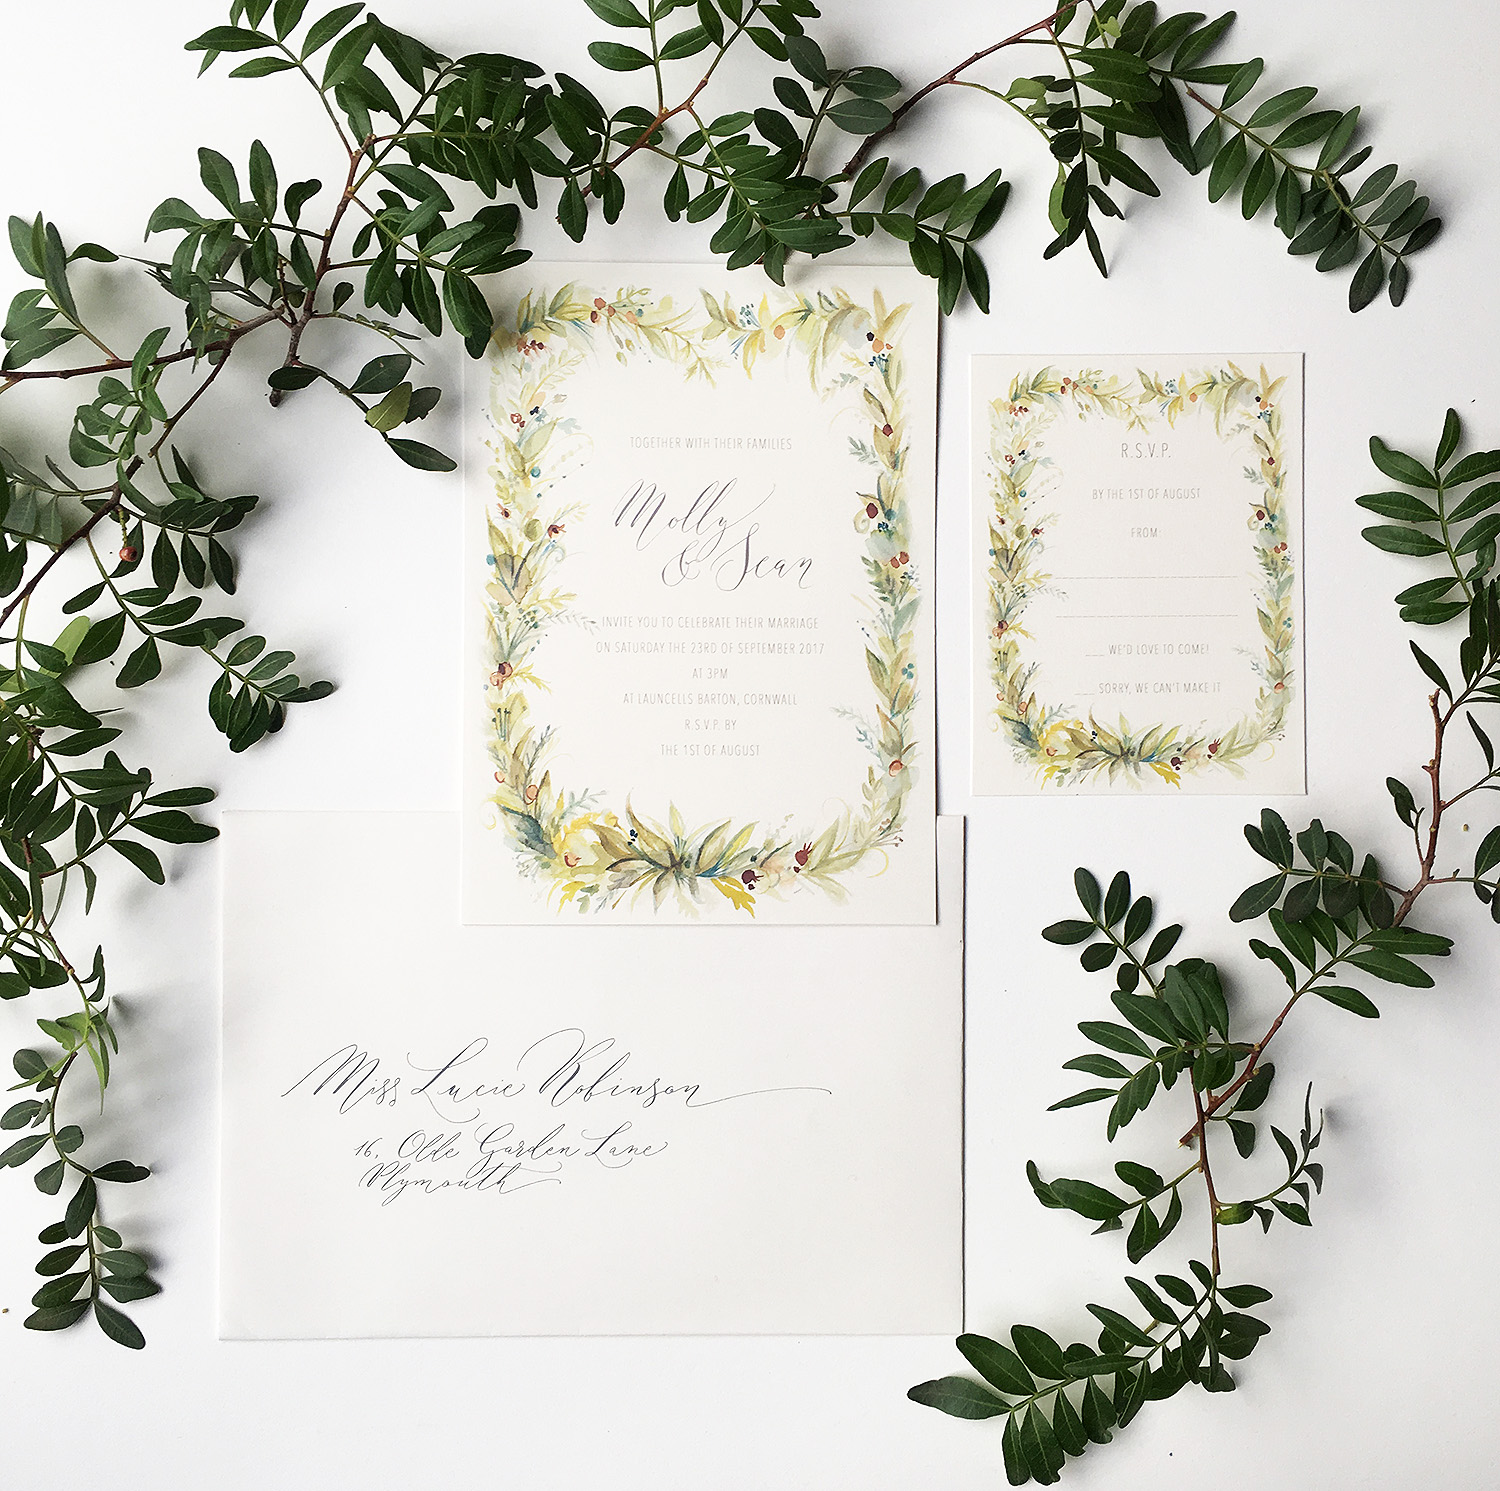 natural wedding invitation By Moon Tide